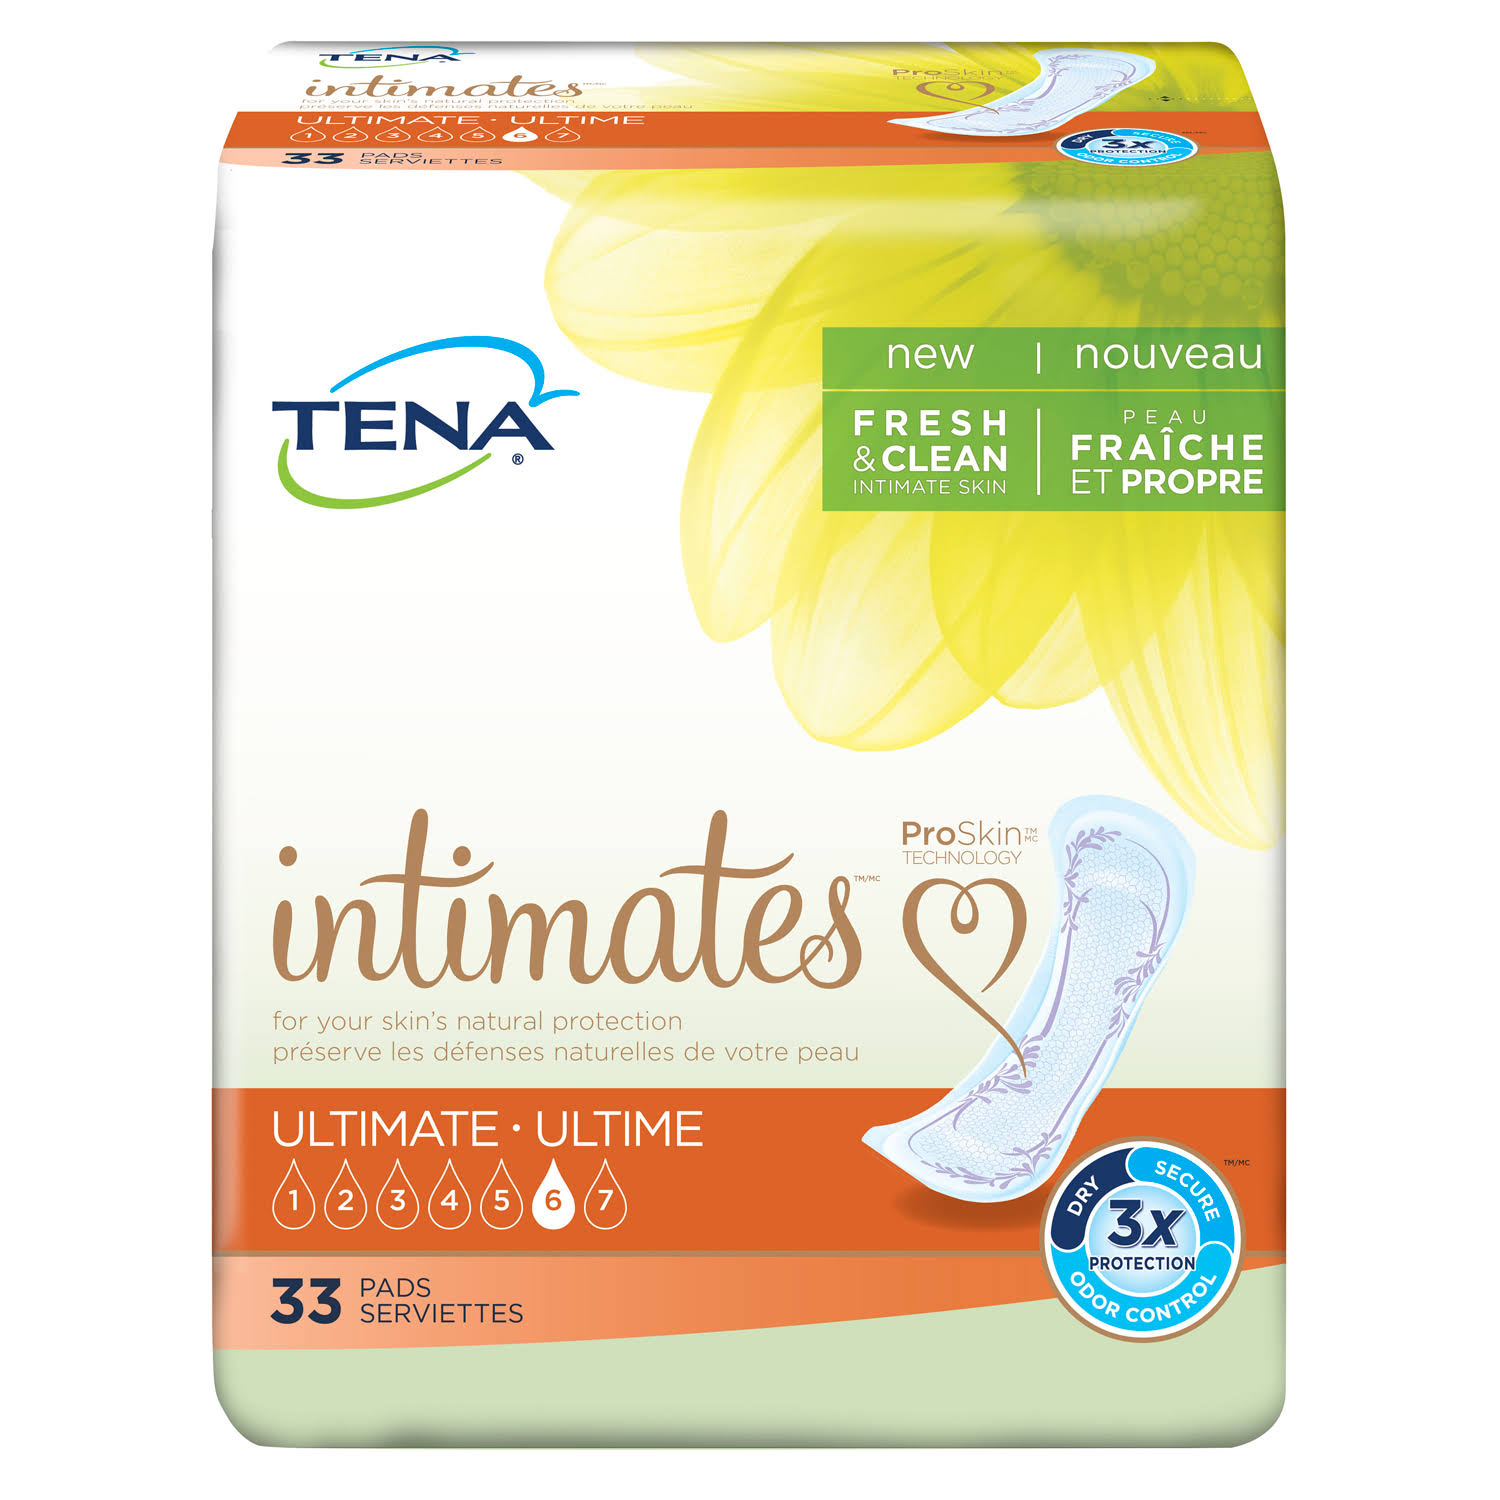 TENA Serenity Ultimate Pads - 33pcs